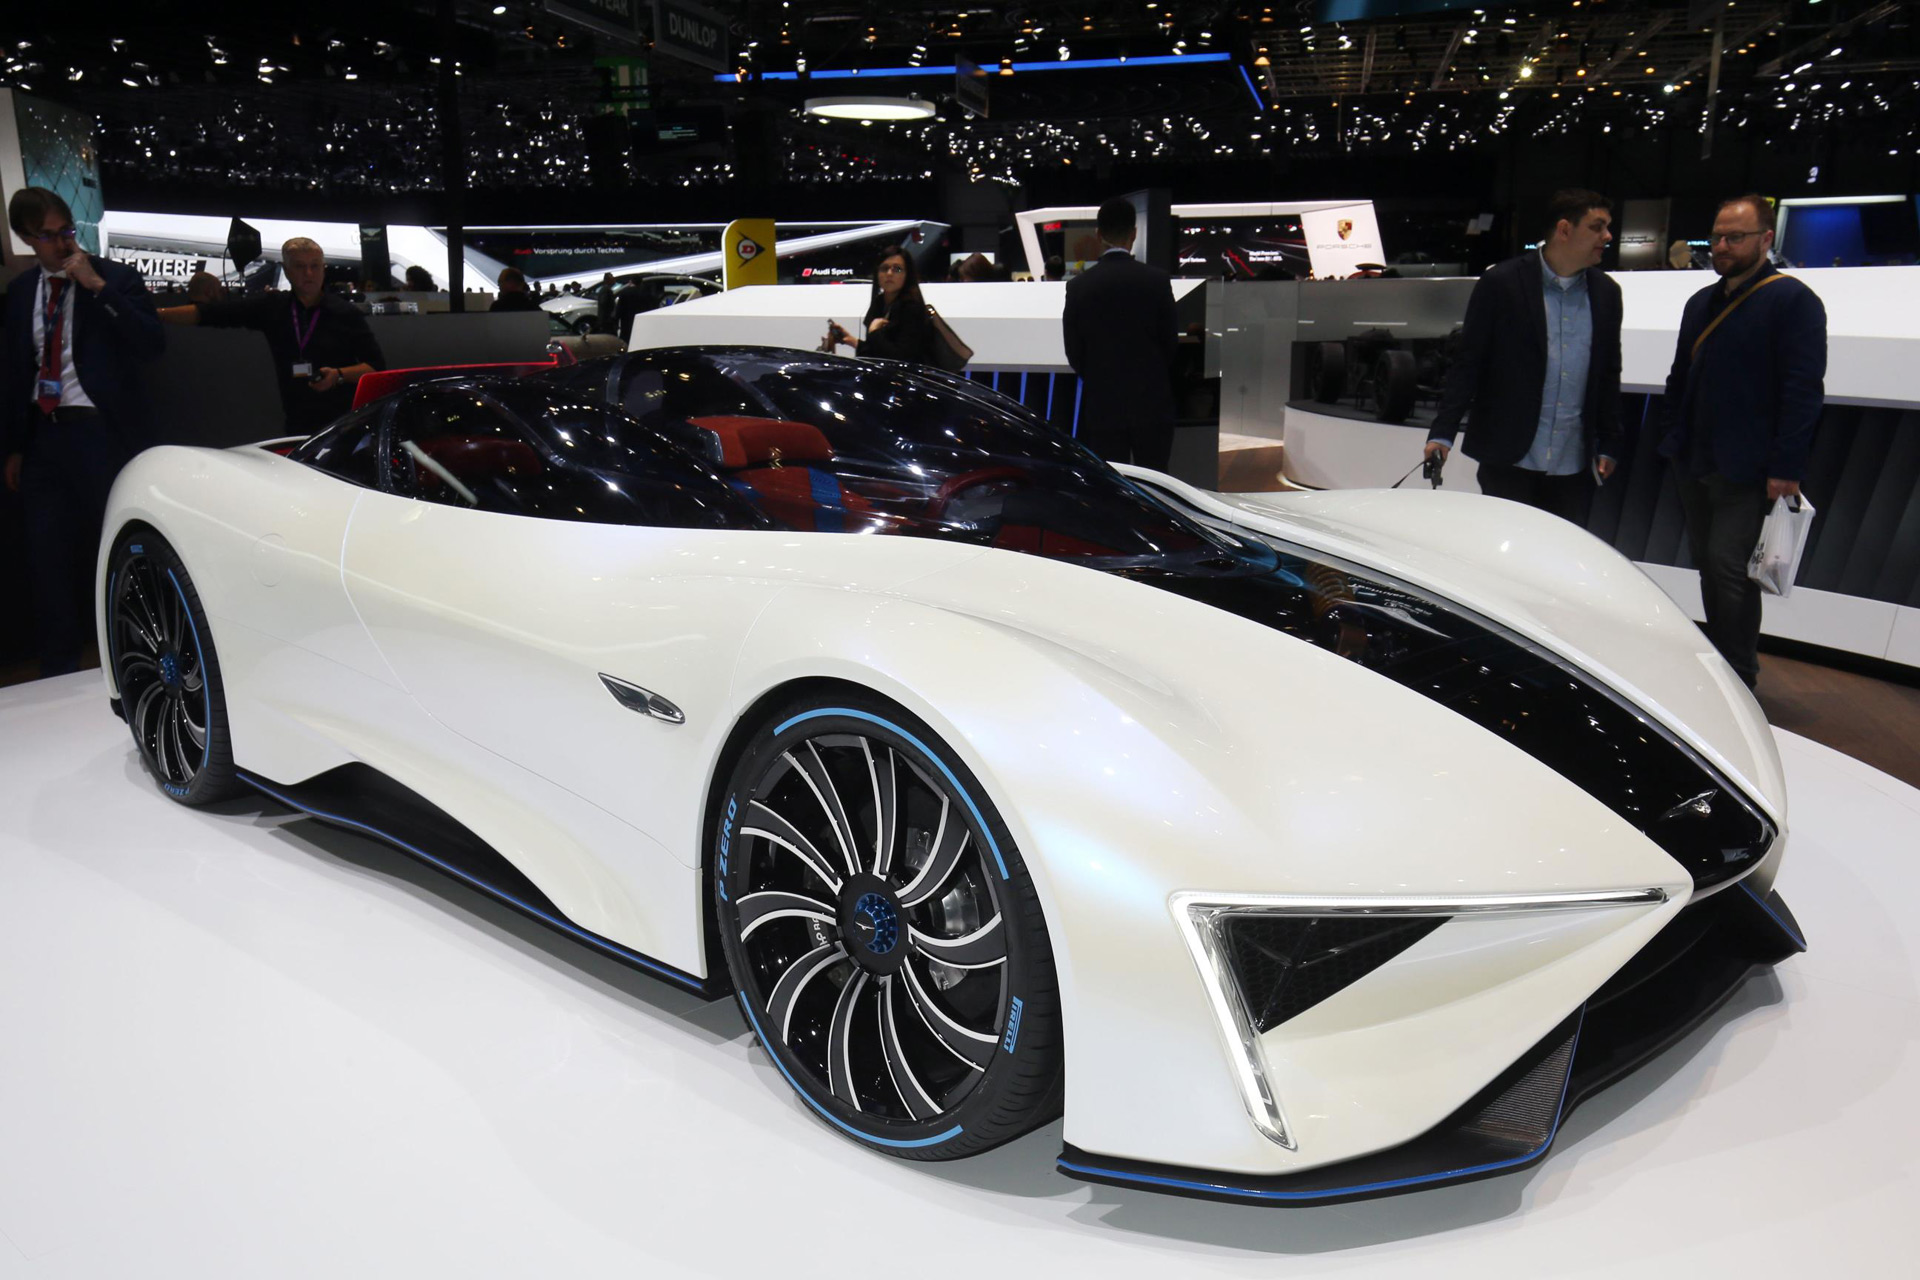 Techrules Ren Is An Extended Range Electric Supercar With A Central Driving Position